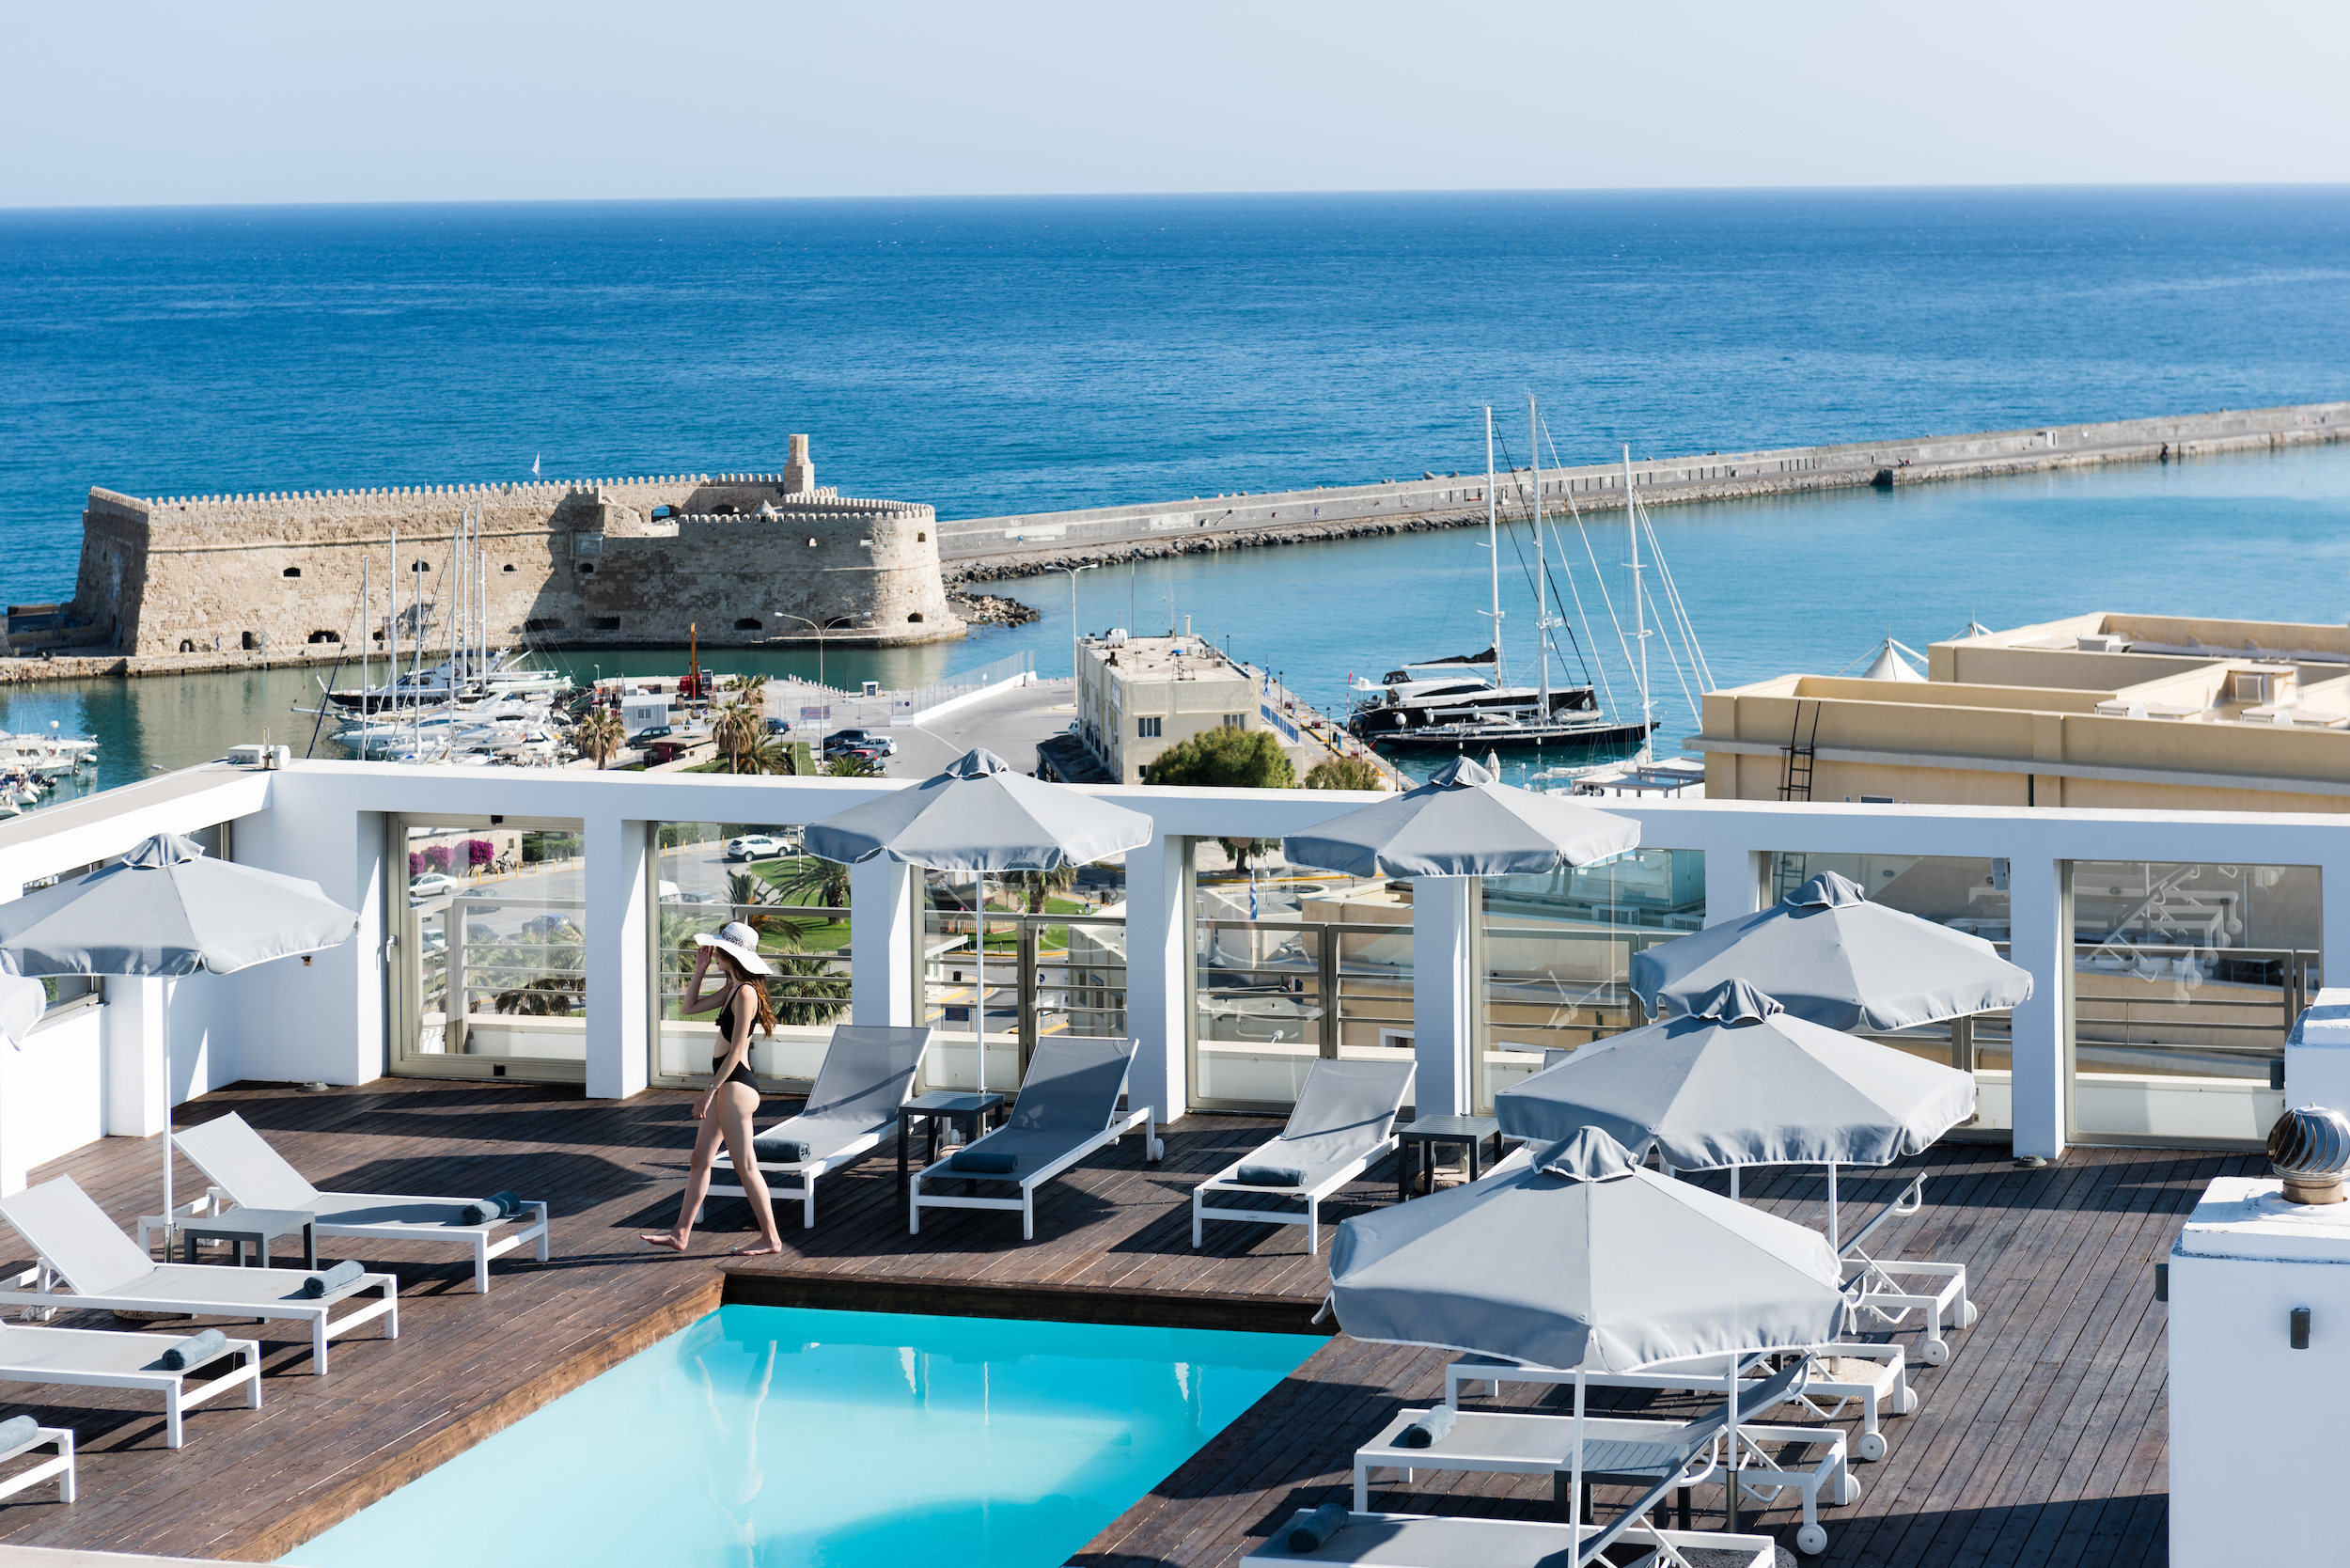 aquila atlantis hotel - roof top pool 11